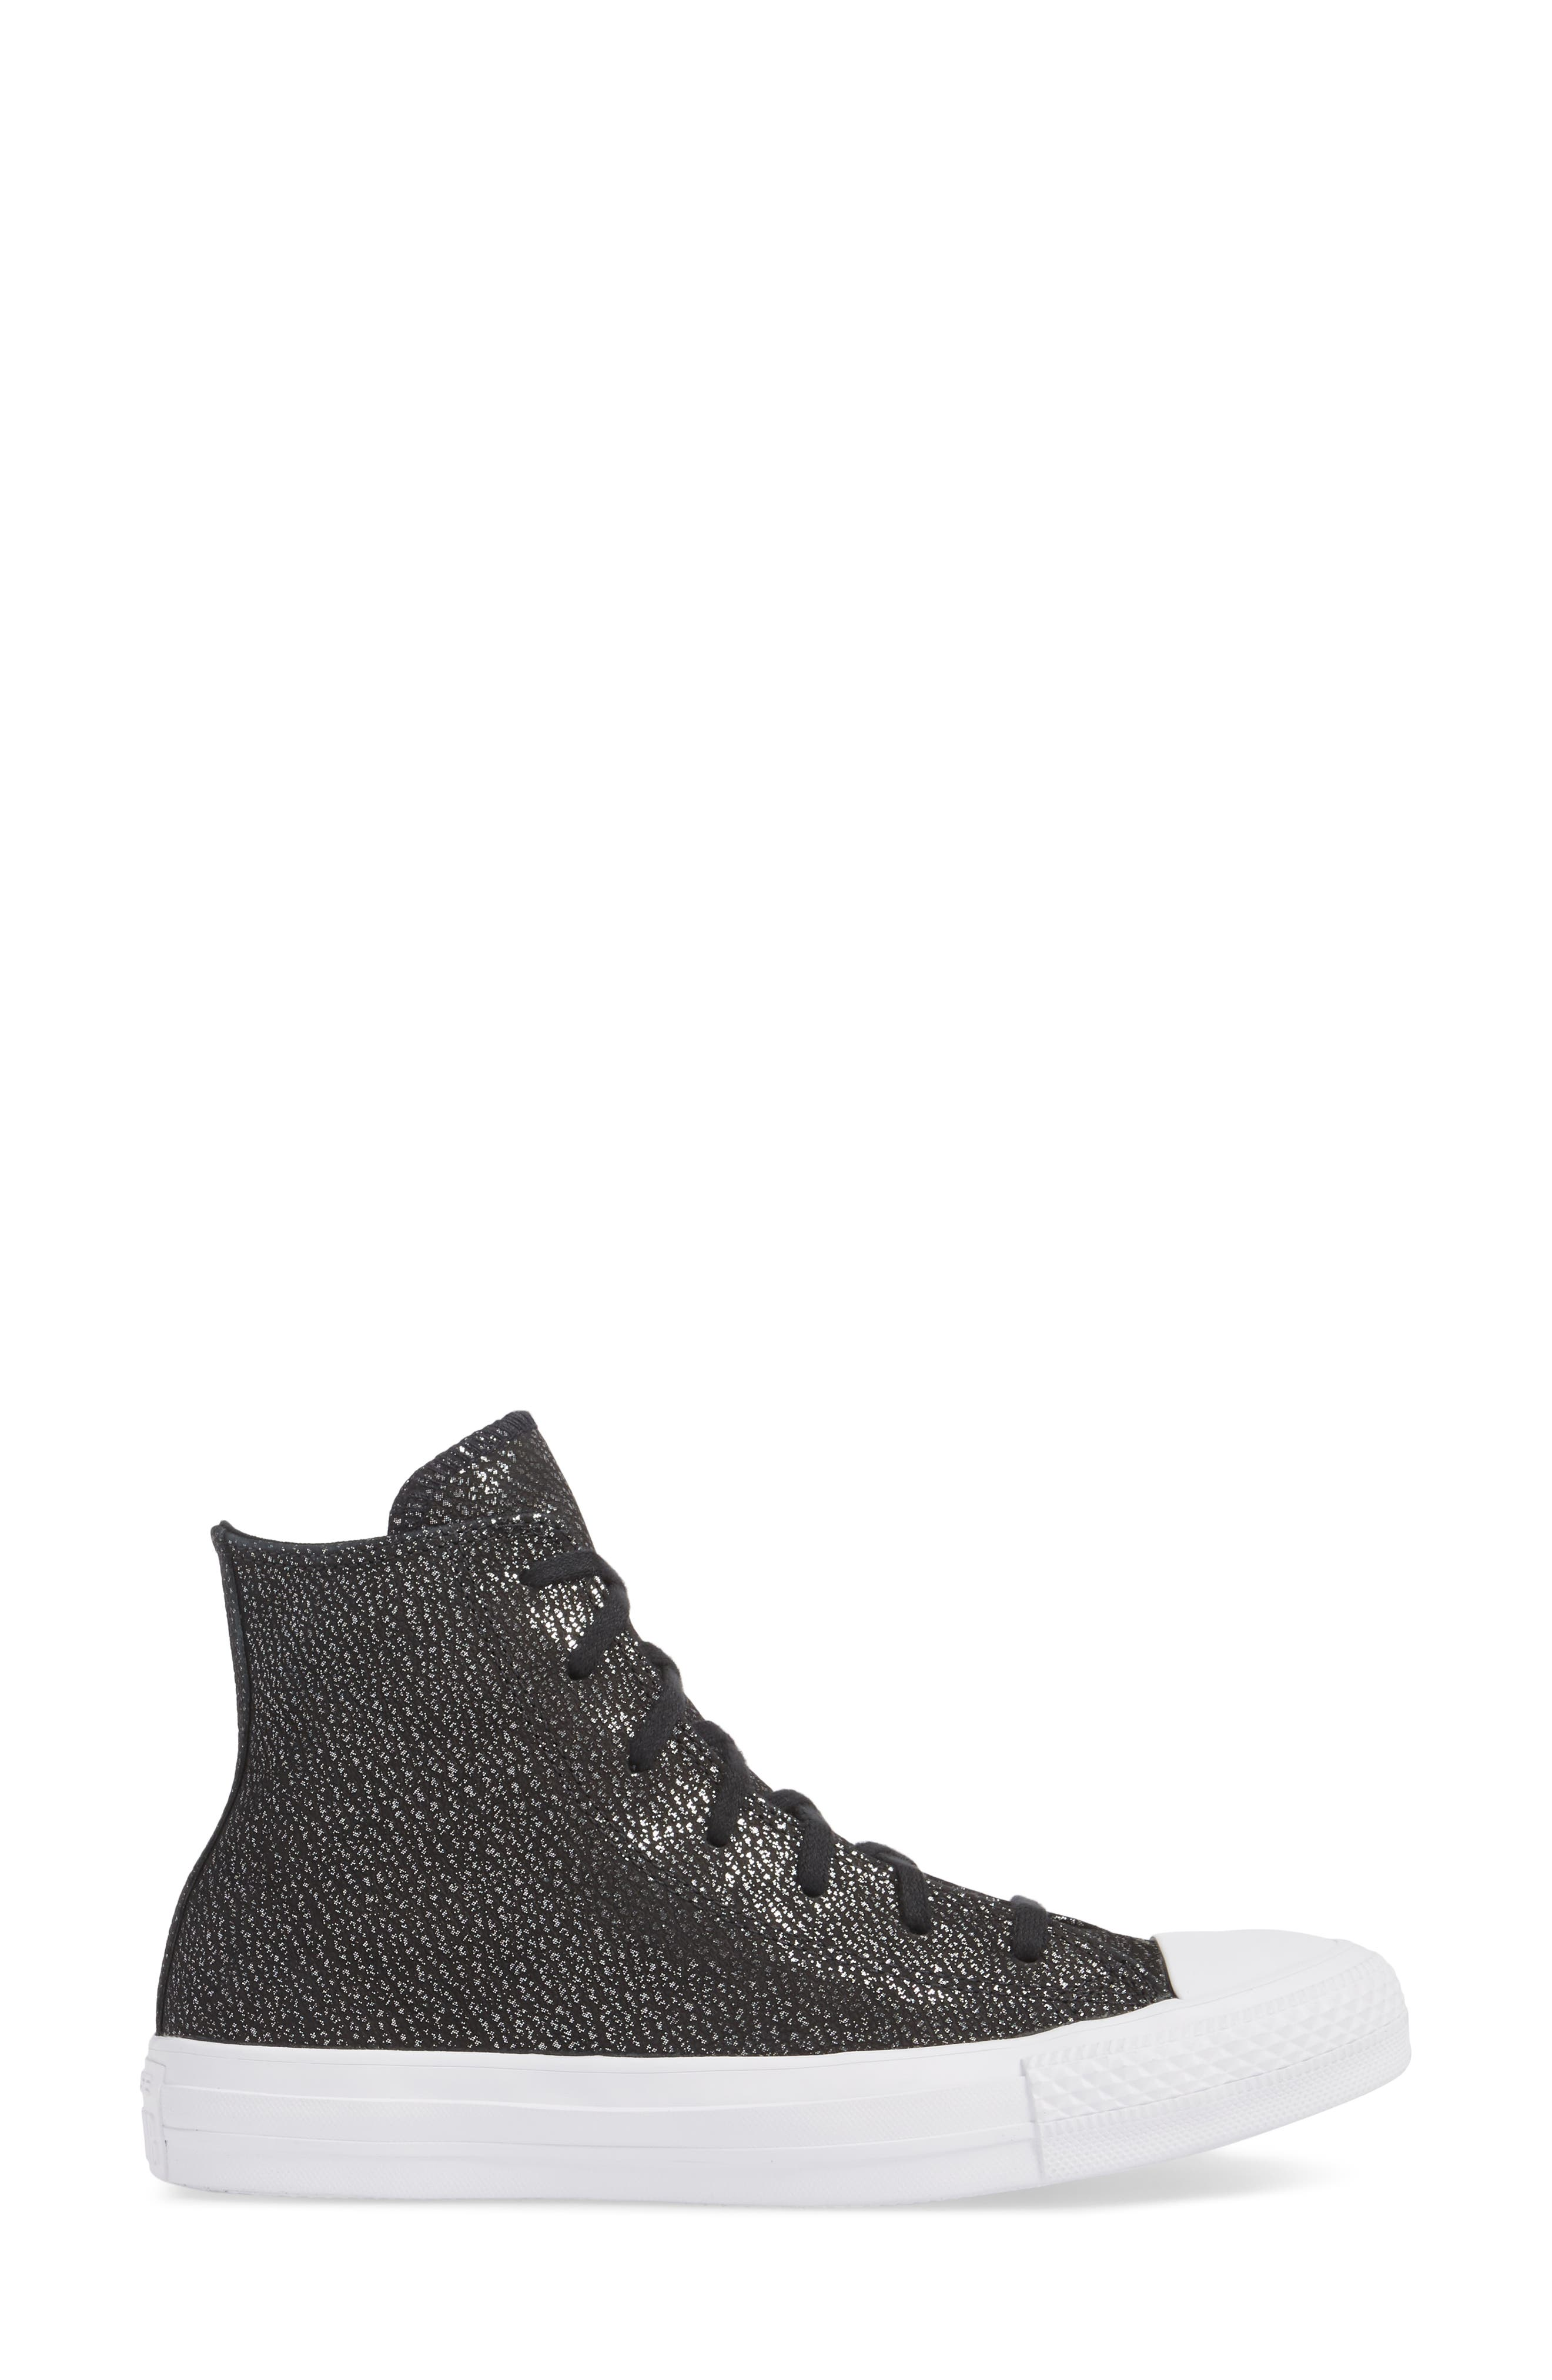 Chuck Taylor<sup>®</sup> All Star<sup>®</sup> Tipped Metallic High Top Sneaker,                             Alternate thumbnail 6, color,